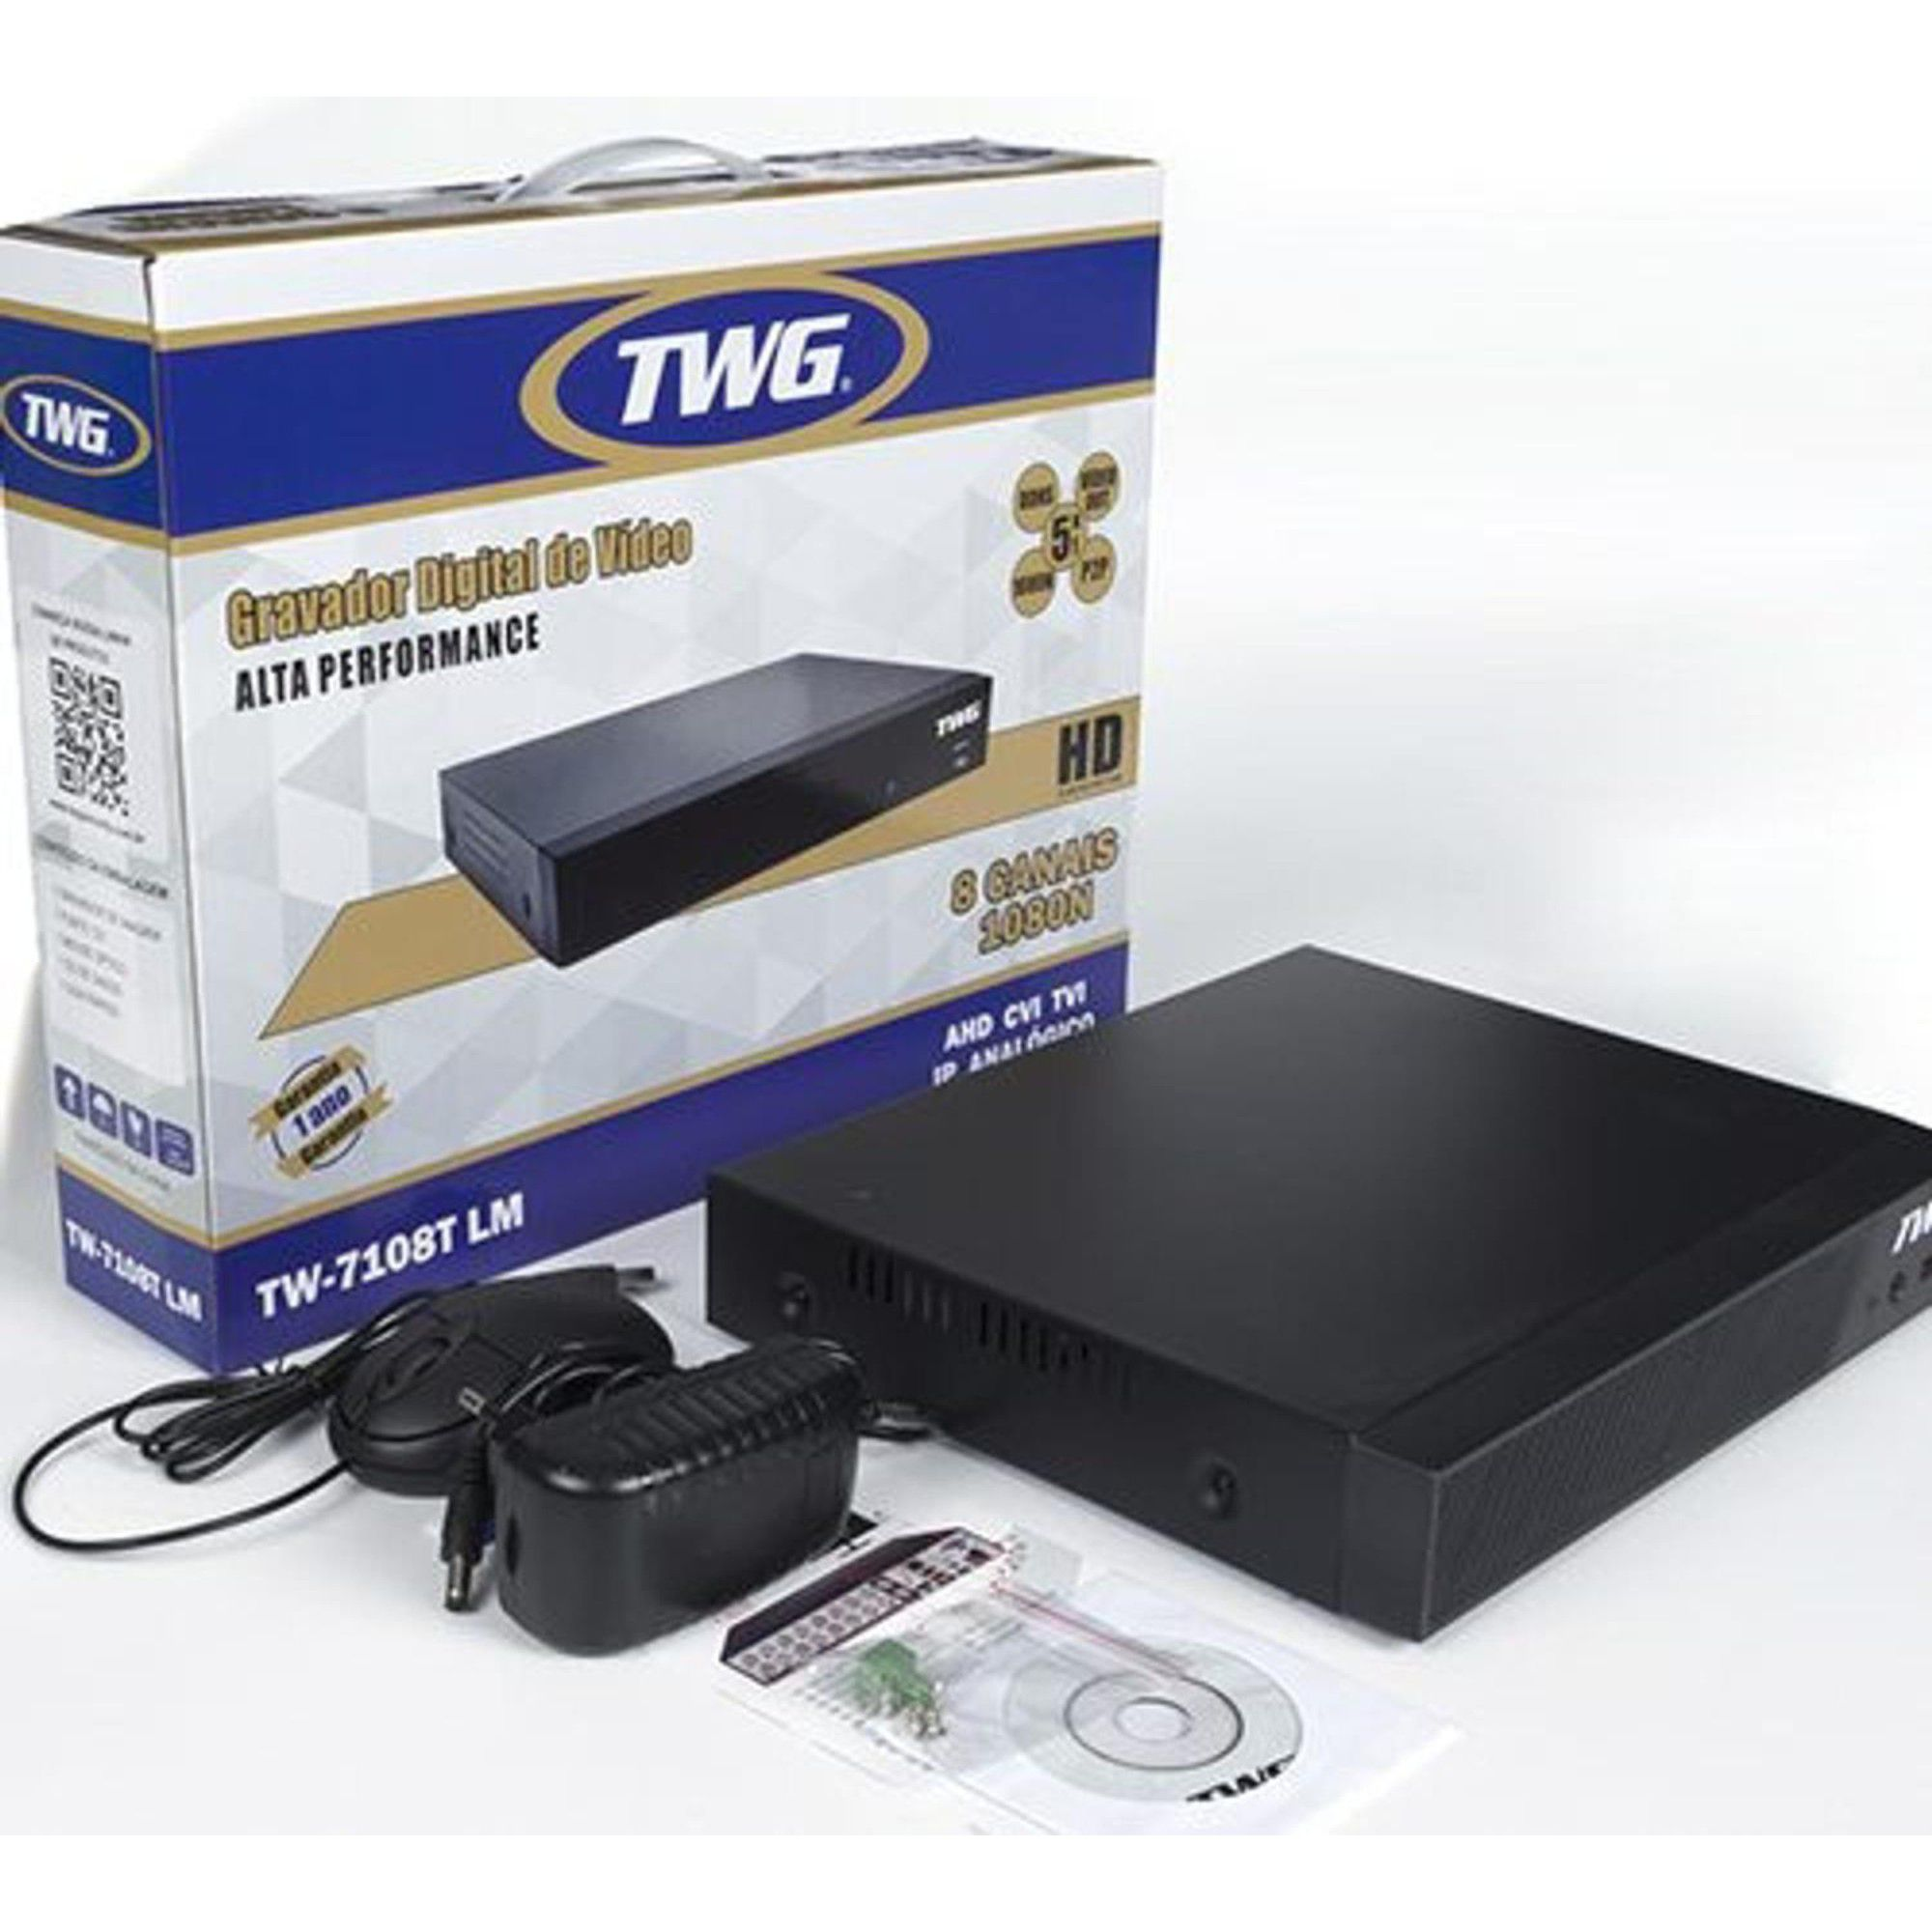 DVR Stand Alone 8 Canais TWG Full HD 5 em 1